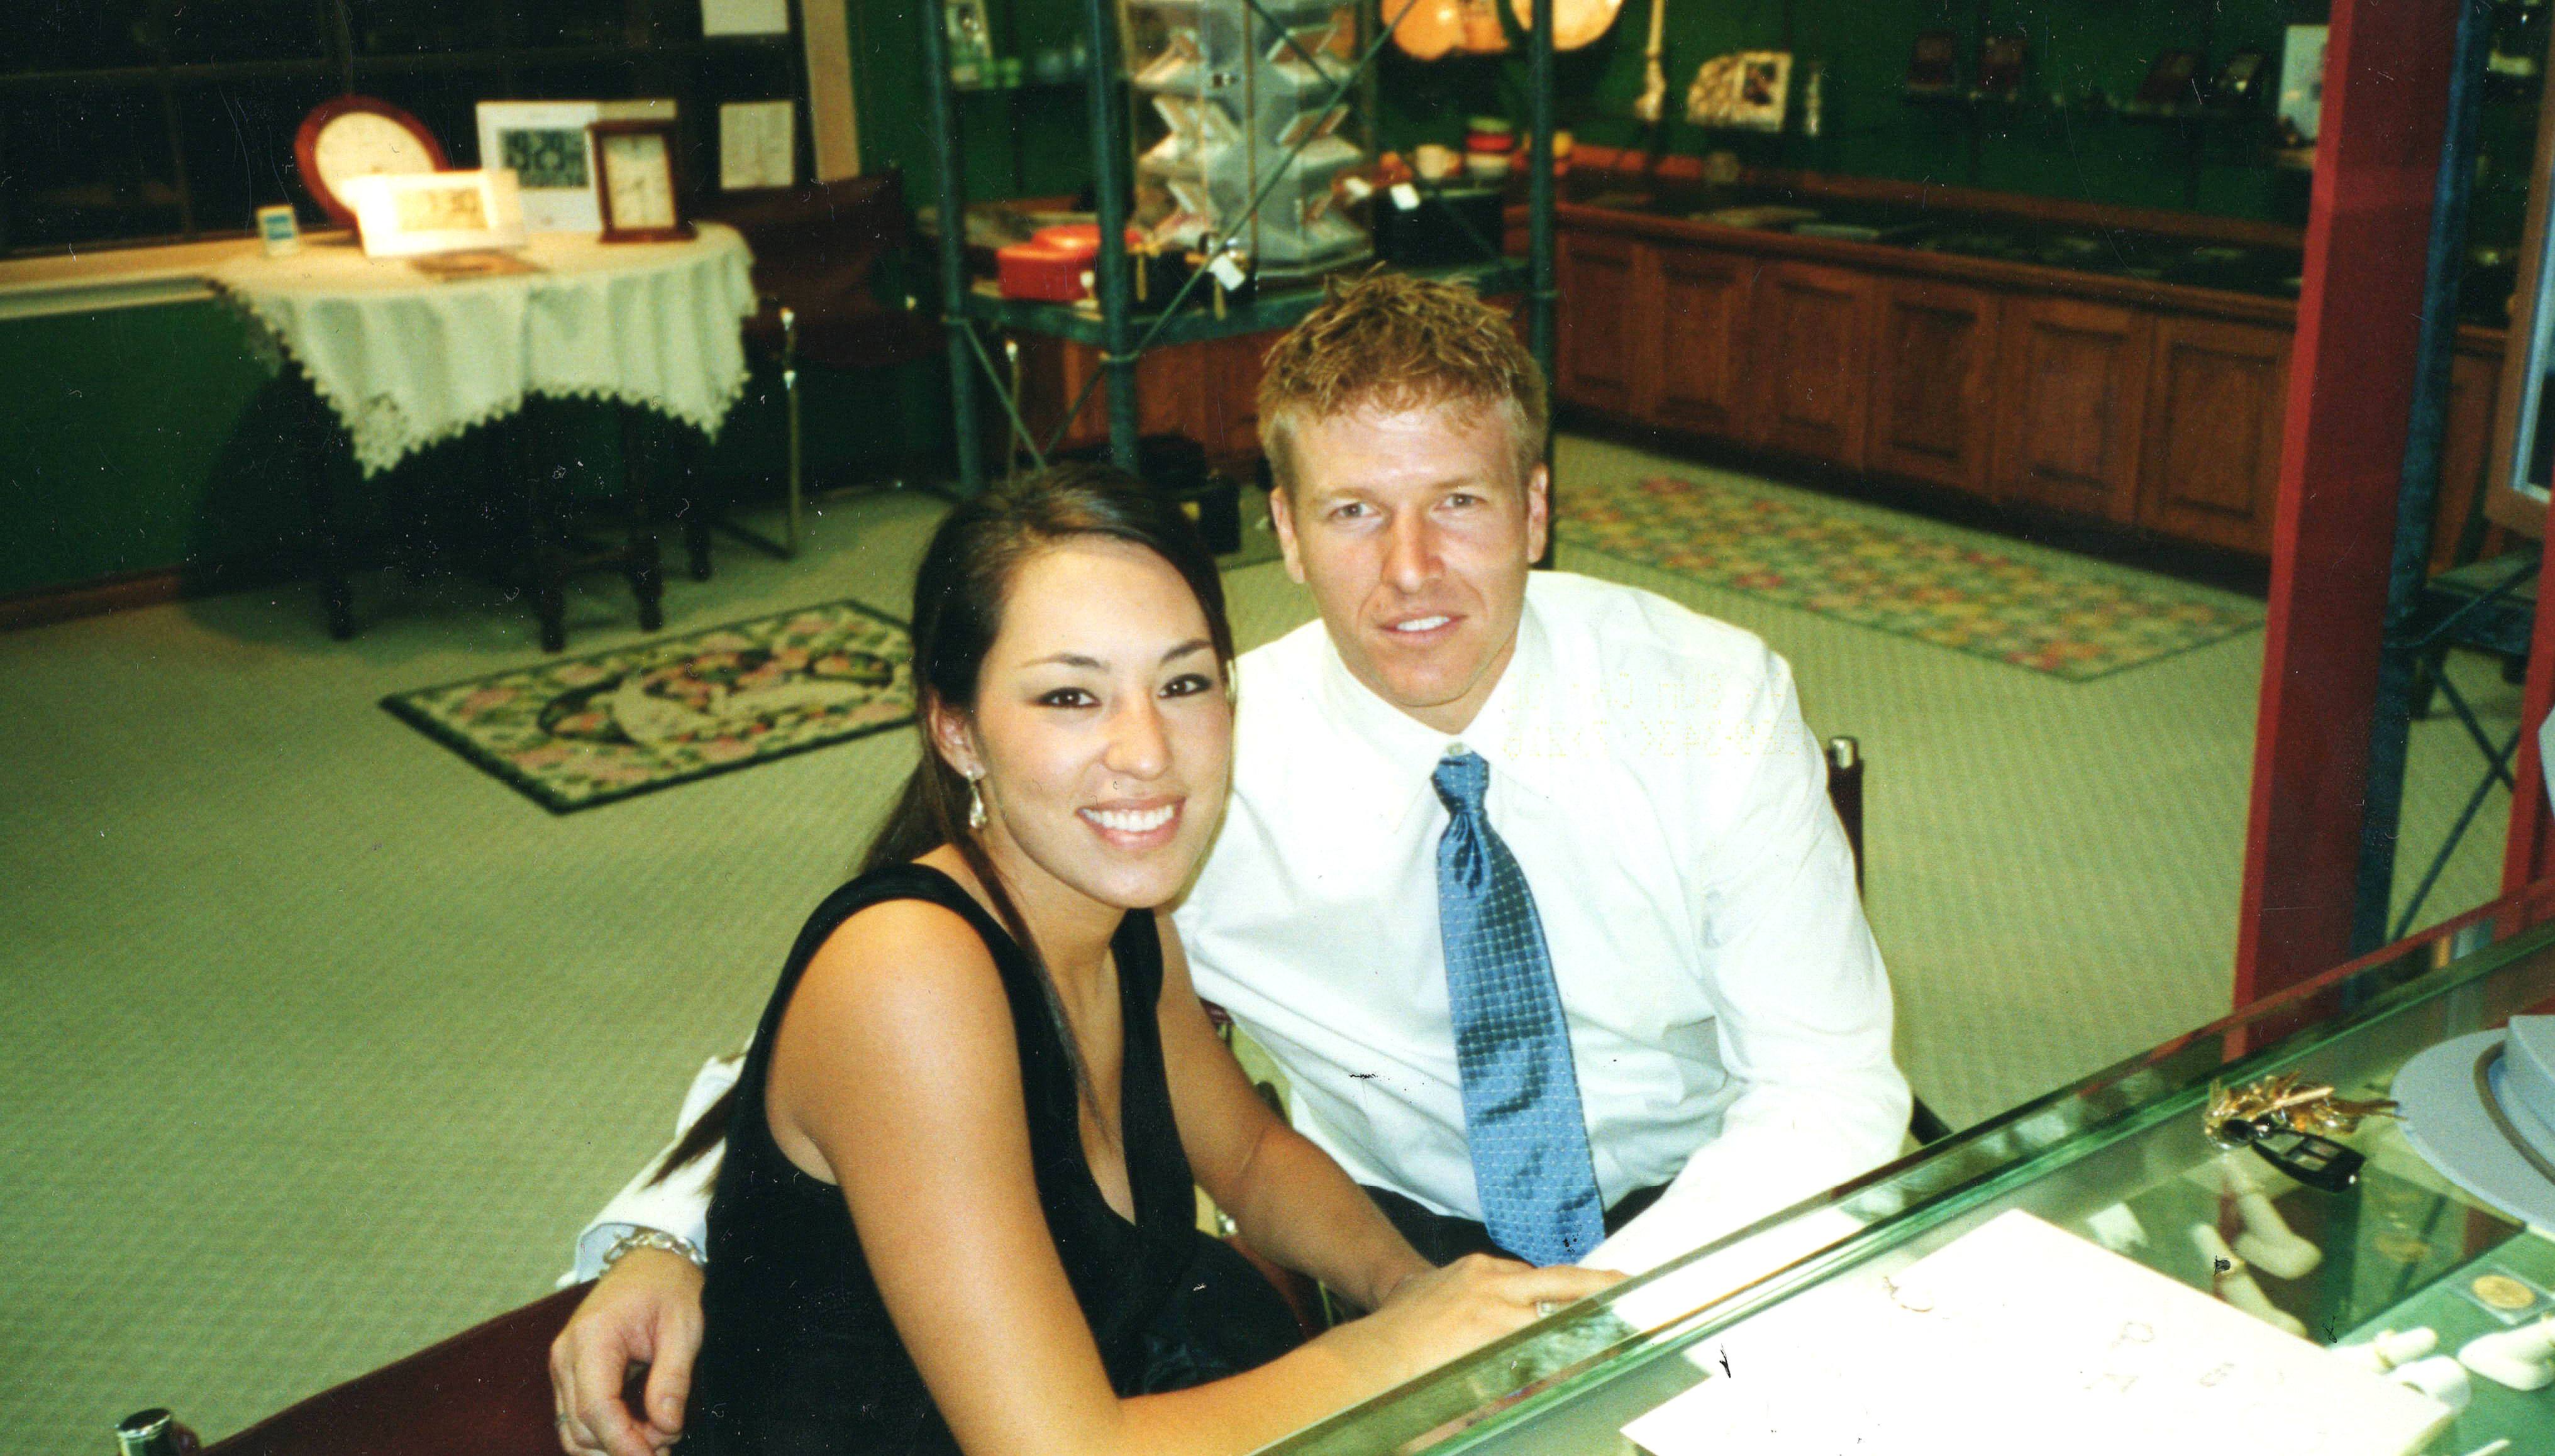 Chip And Joanna Gaines Family Album Through The Years